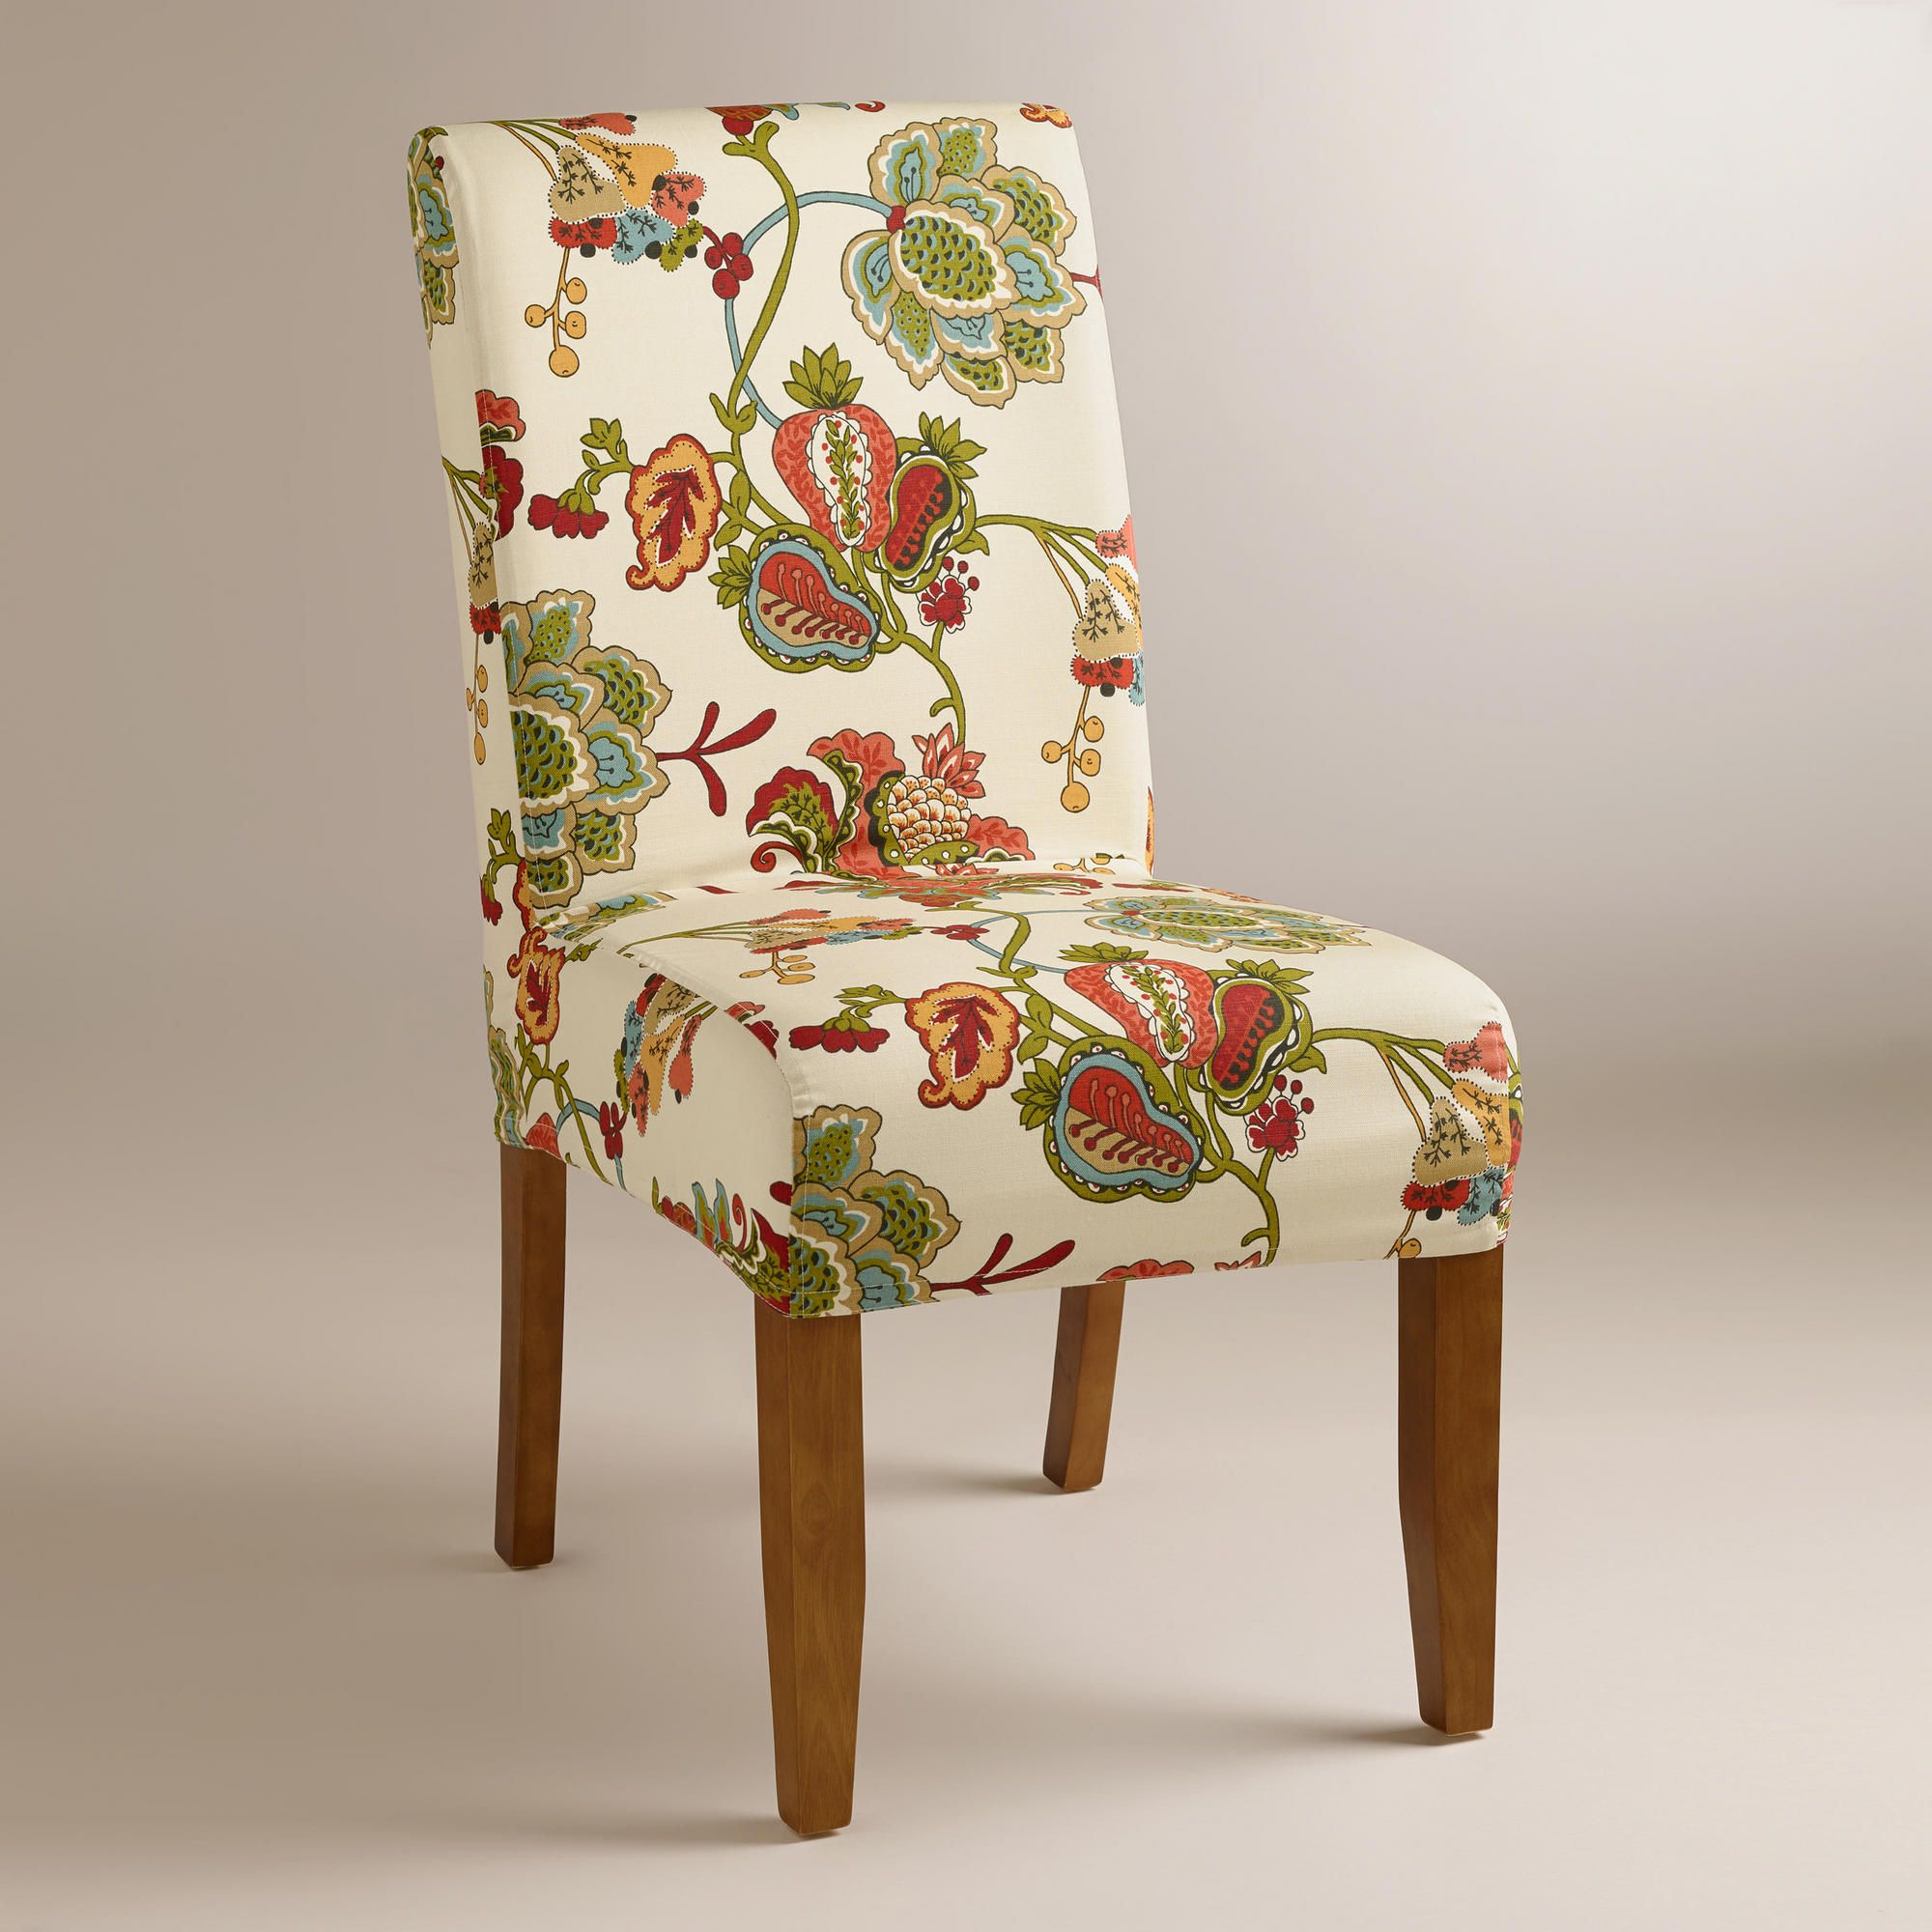 Leopold Floral Anna Slipcover World Market Adorable